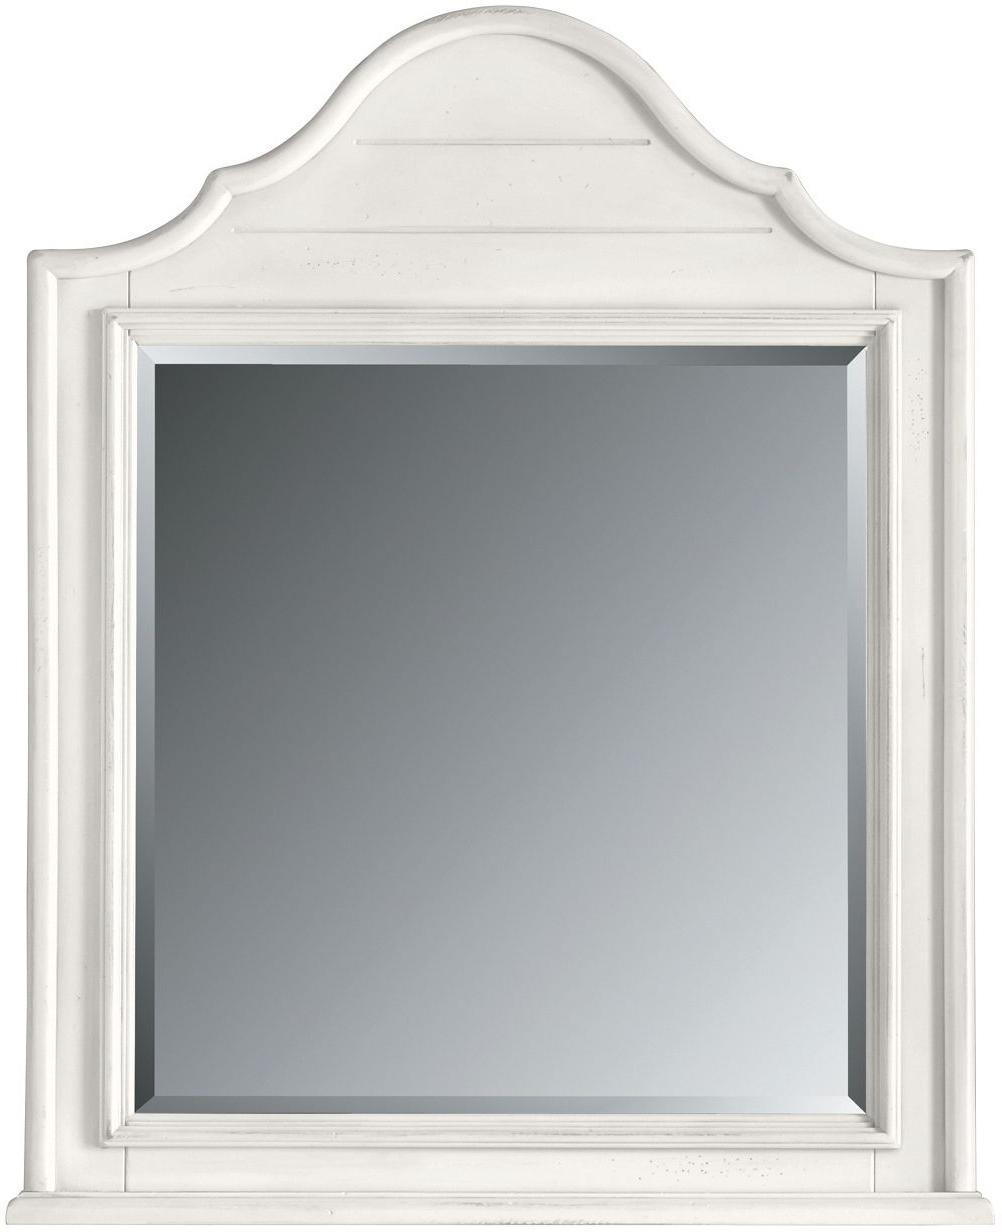 Stanley Furniture Coastal Living Retreat Arch Top Mirror - Item Number: 411-23-31